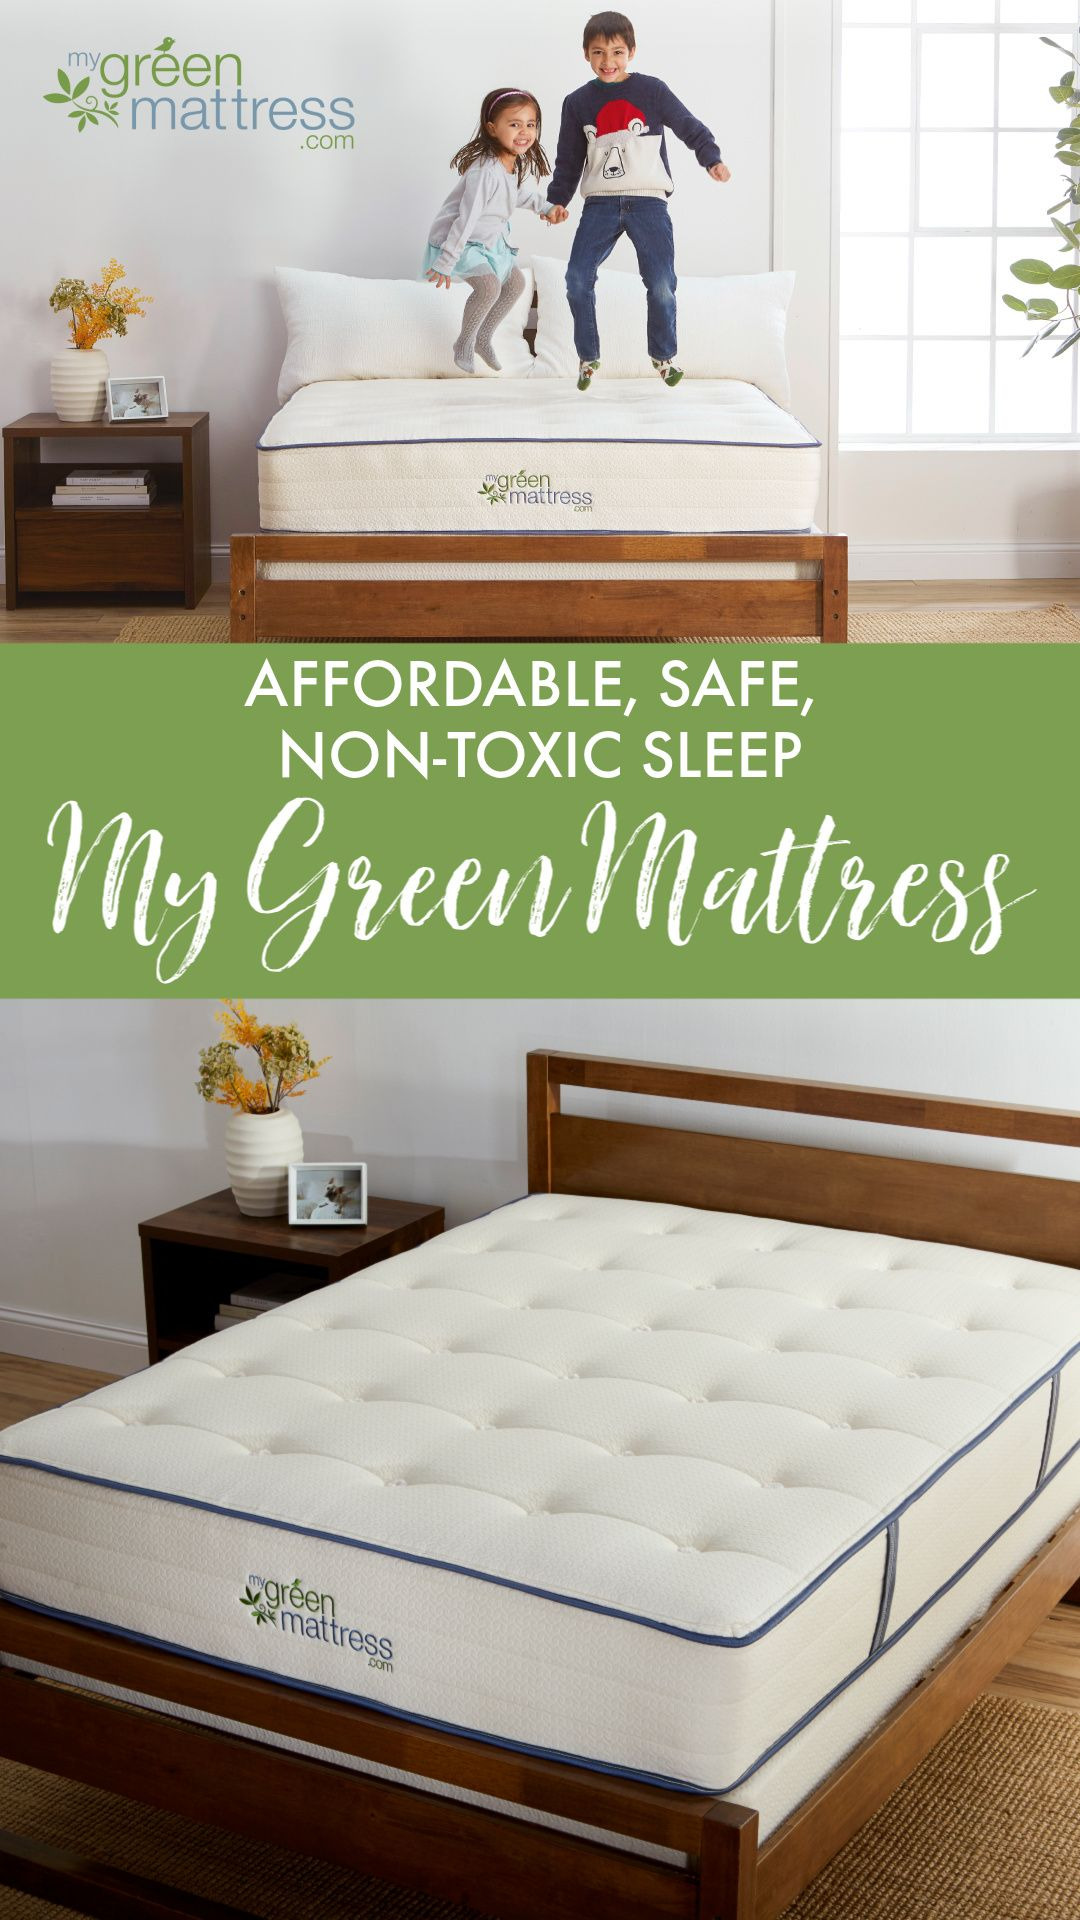 When Parents Ask Us About Choosing A Non Toxic Mattress One Of Their Main Concerns Is Affordability We Get It M Green Mattress Organic Mattresses Mattress